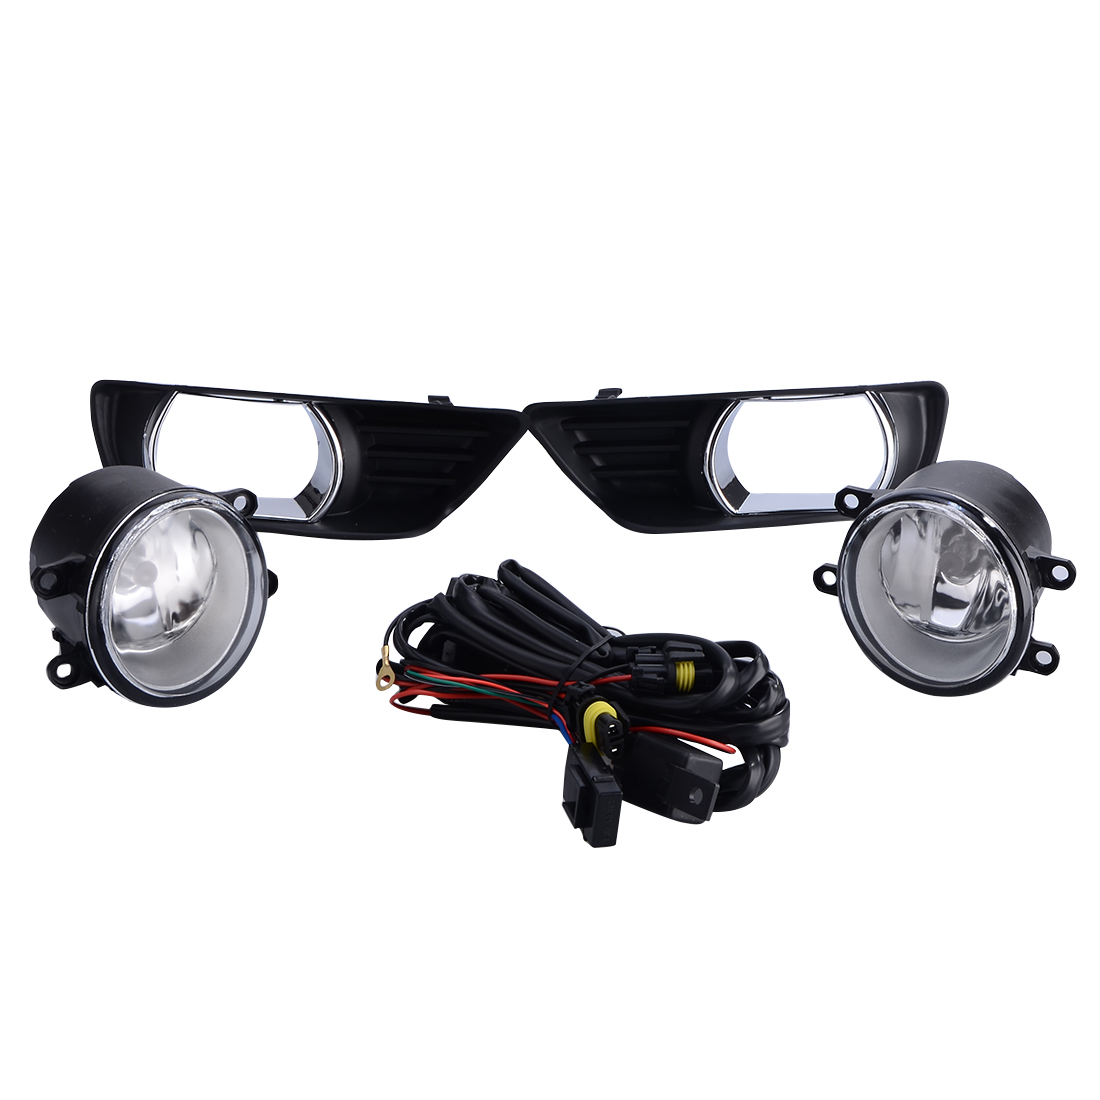 FOR TOYOTA CAMRY 07-09 BLACK/CHROME COVER GLASS LENS FOG LIGHTS LAMPS w/ SWITCH 1set front chrome housing clear lens driving bumper fog light lamp grille cover switch line kit for 2007 2009 toyota camry